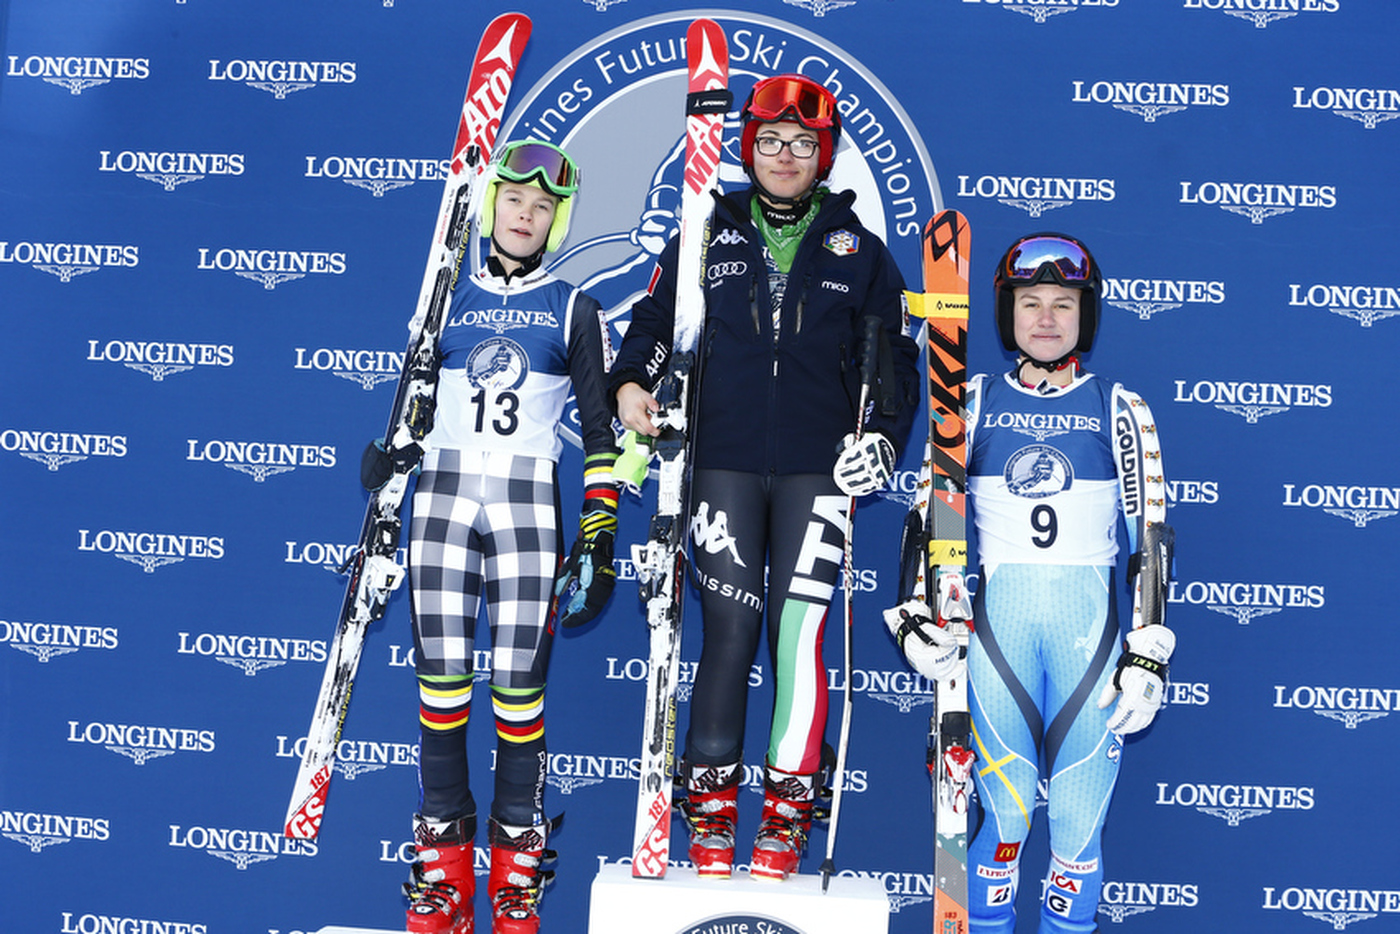 Longines Alpine Skiing Event: Second edition of the Longines Future Ski Champions – A successful 100% female competition in Val d'Isère 4